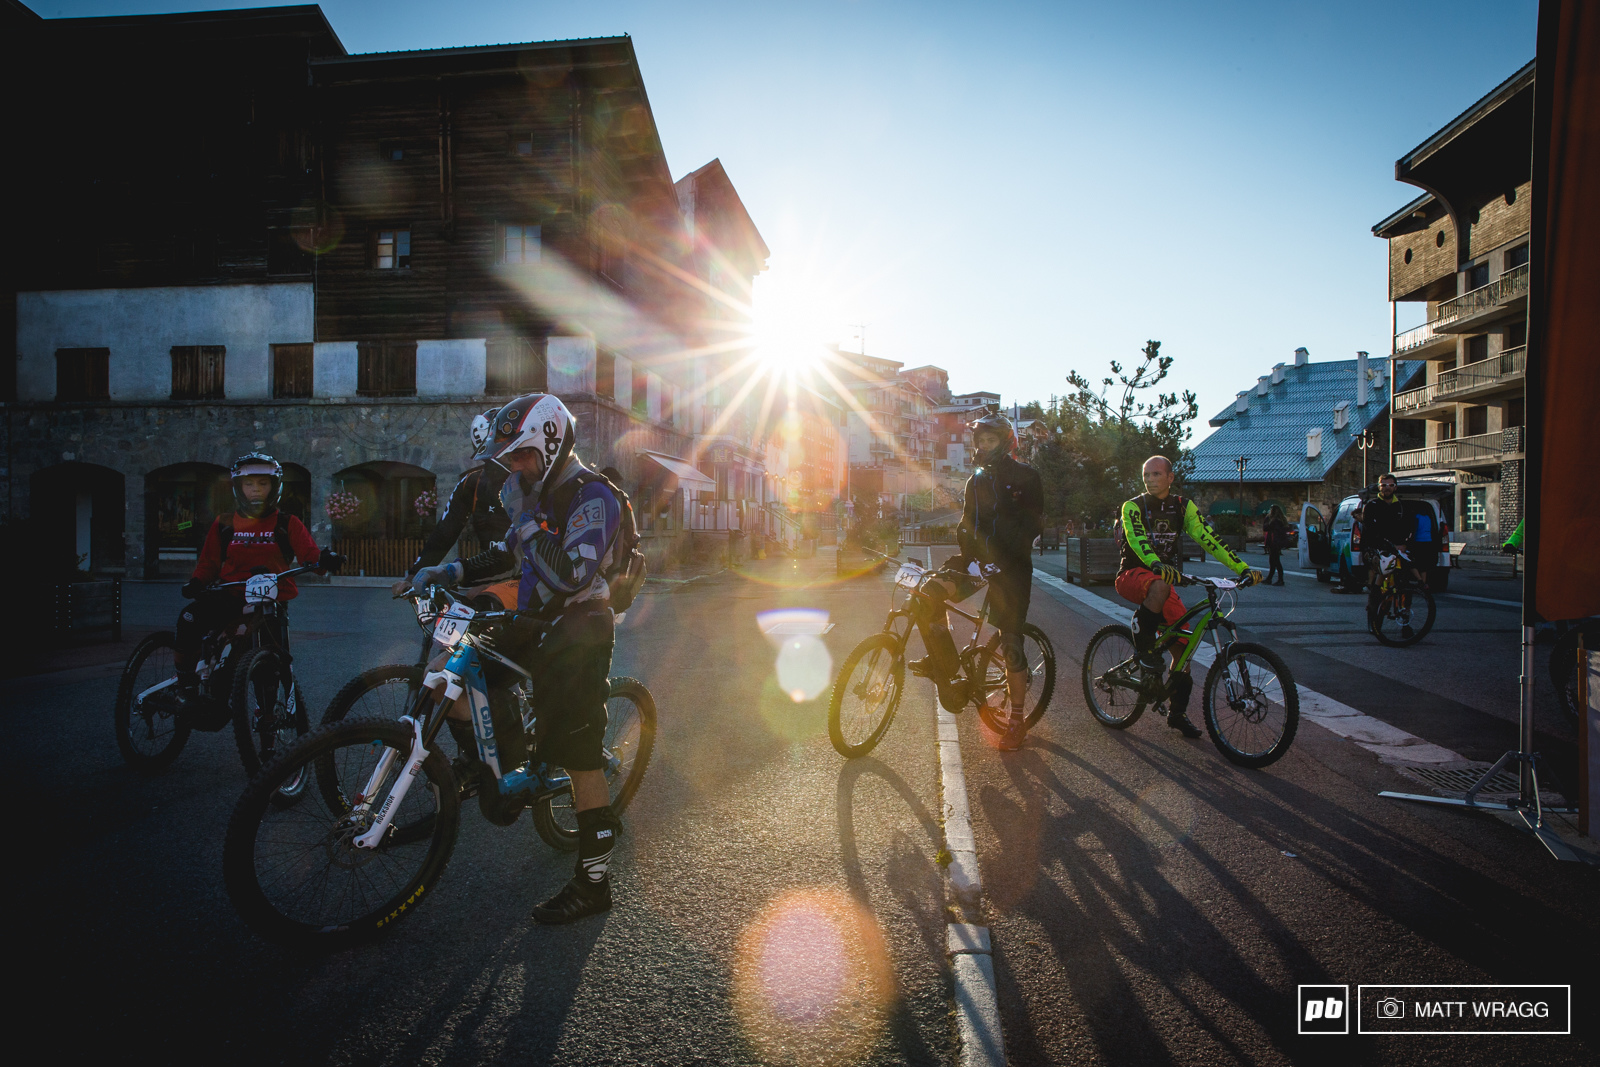 With 60km 2000m climbing and 3000m descending ahead of them it was an early start on Saturday for thr racers.